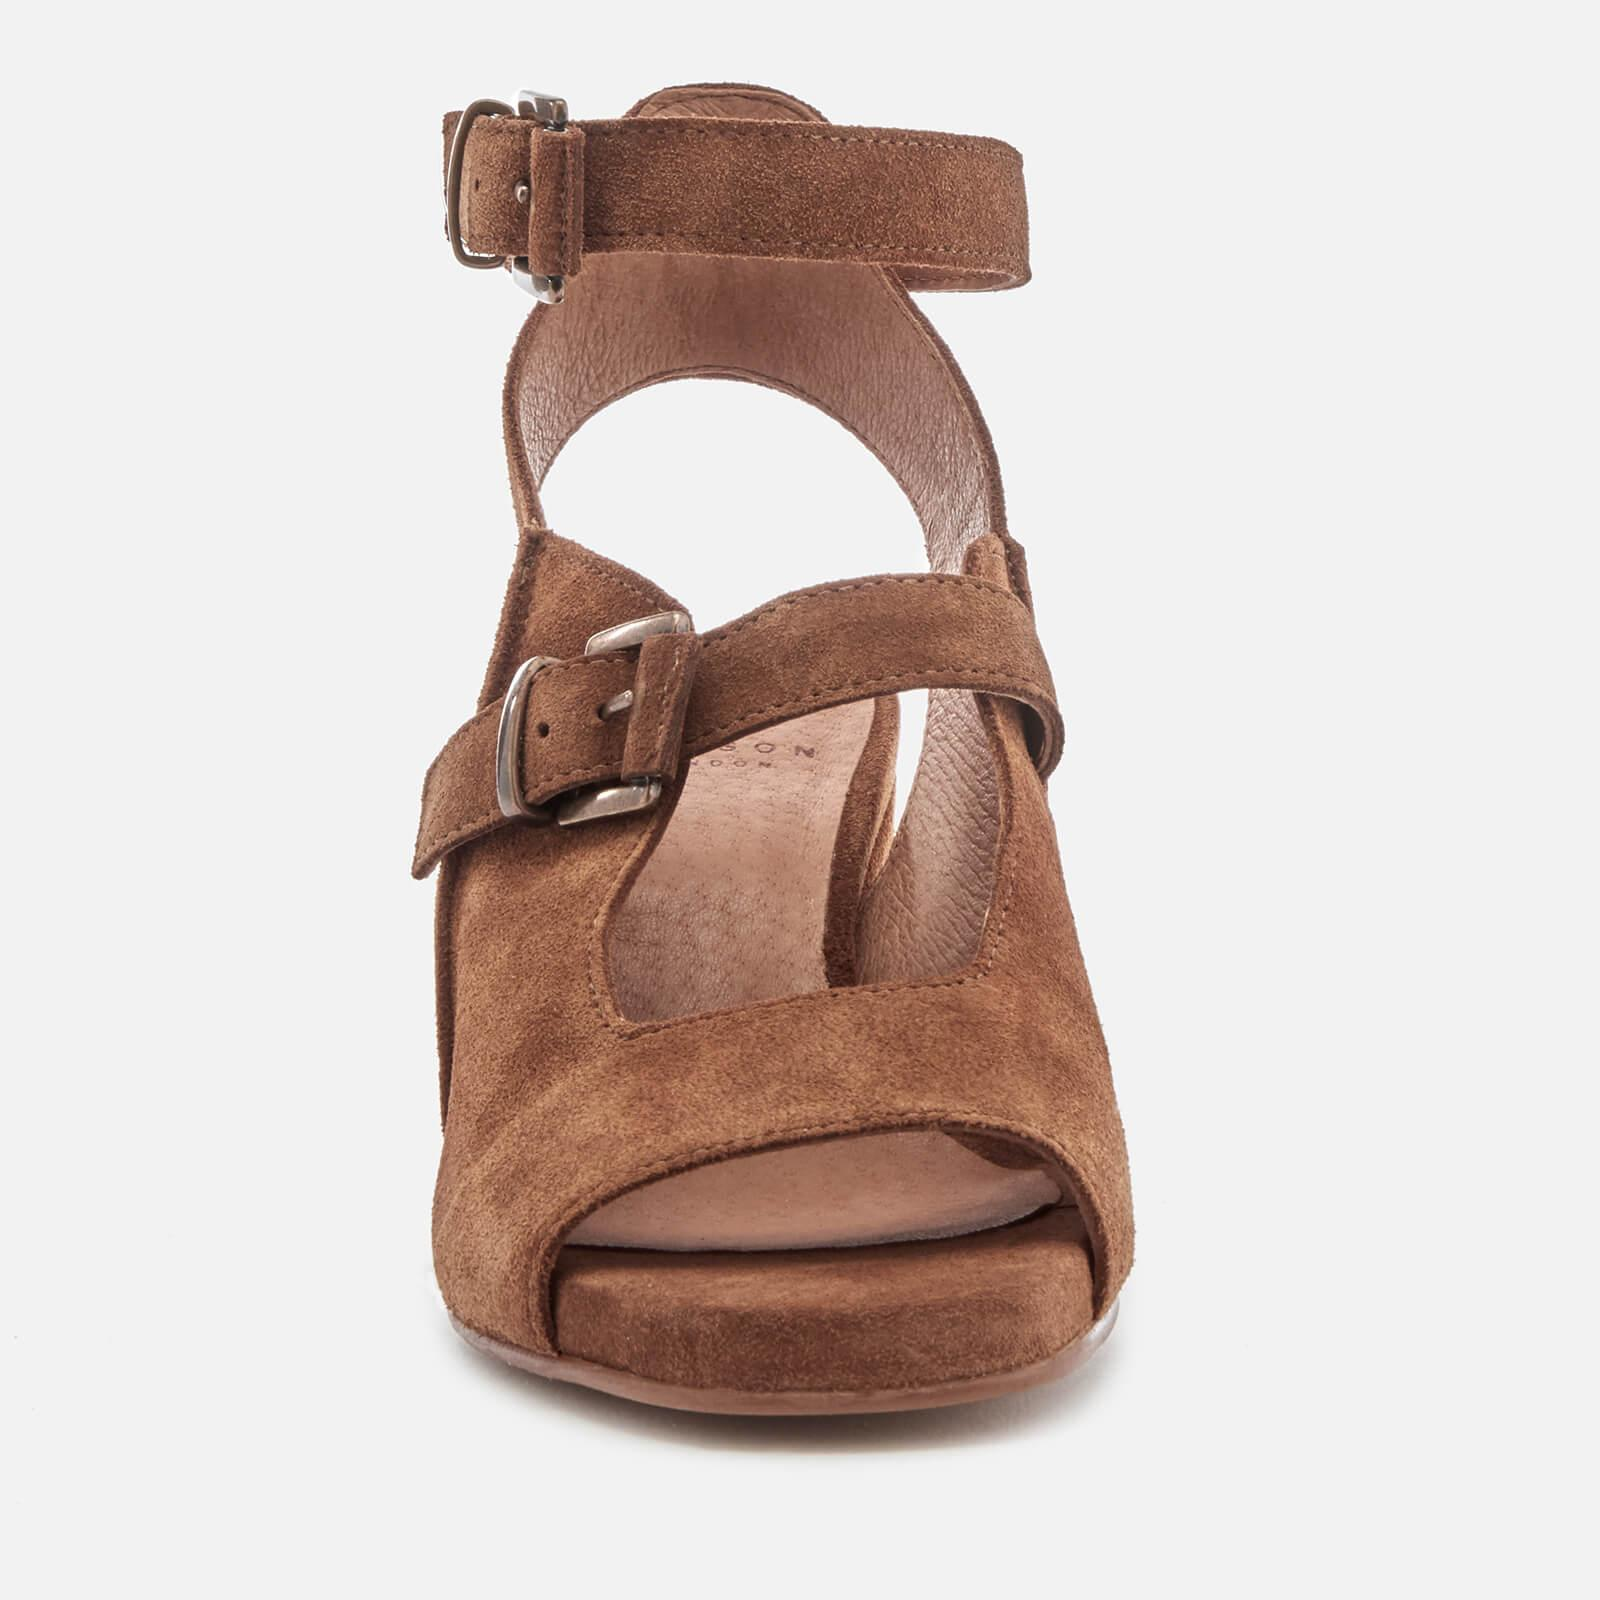 In Brown By Rona Sandals Heeled Hudson Suede H Lyst EDW29HI